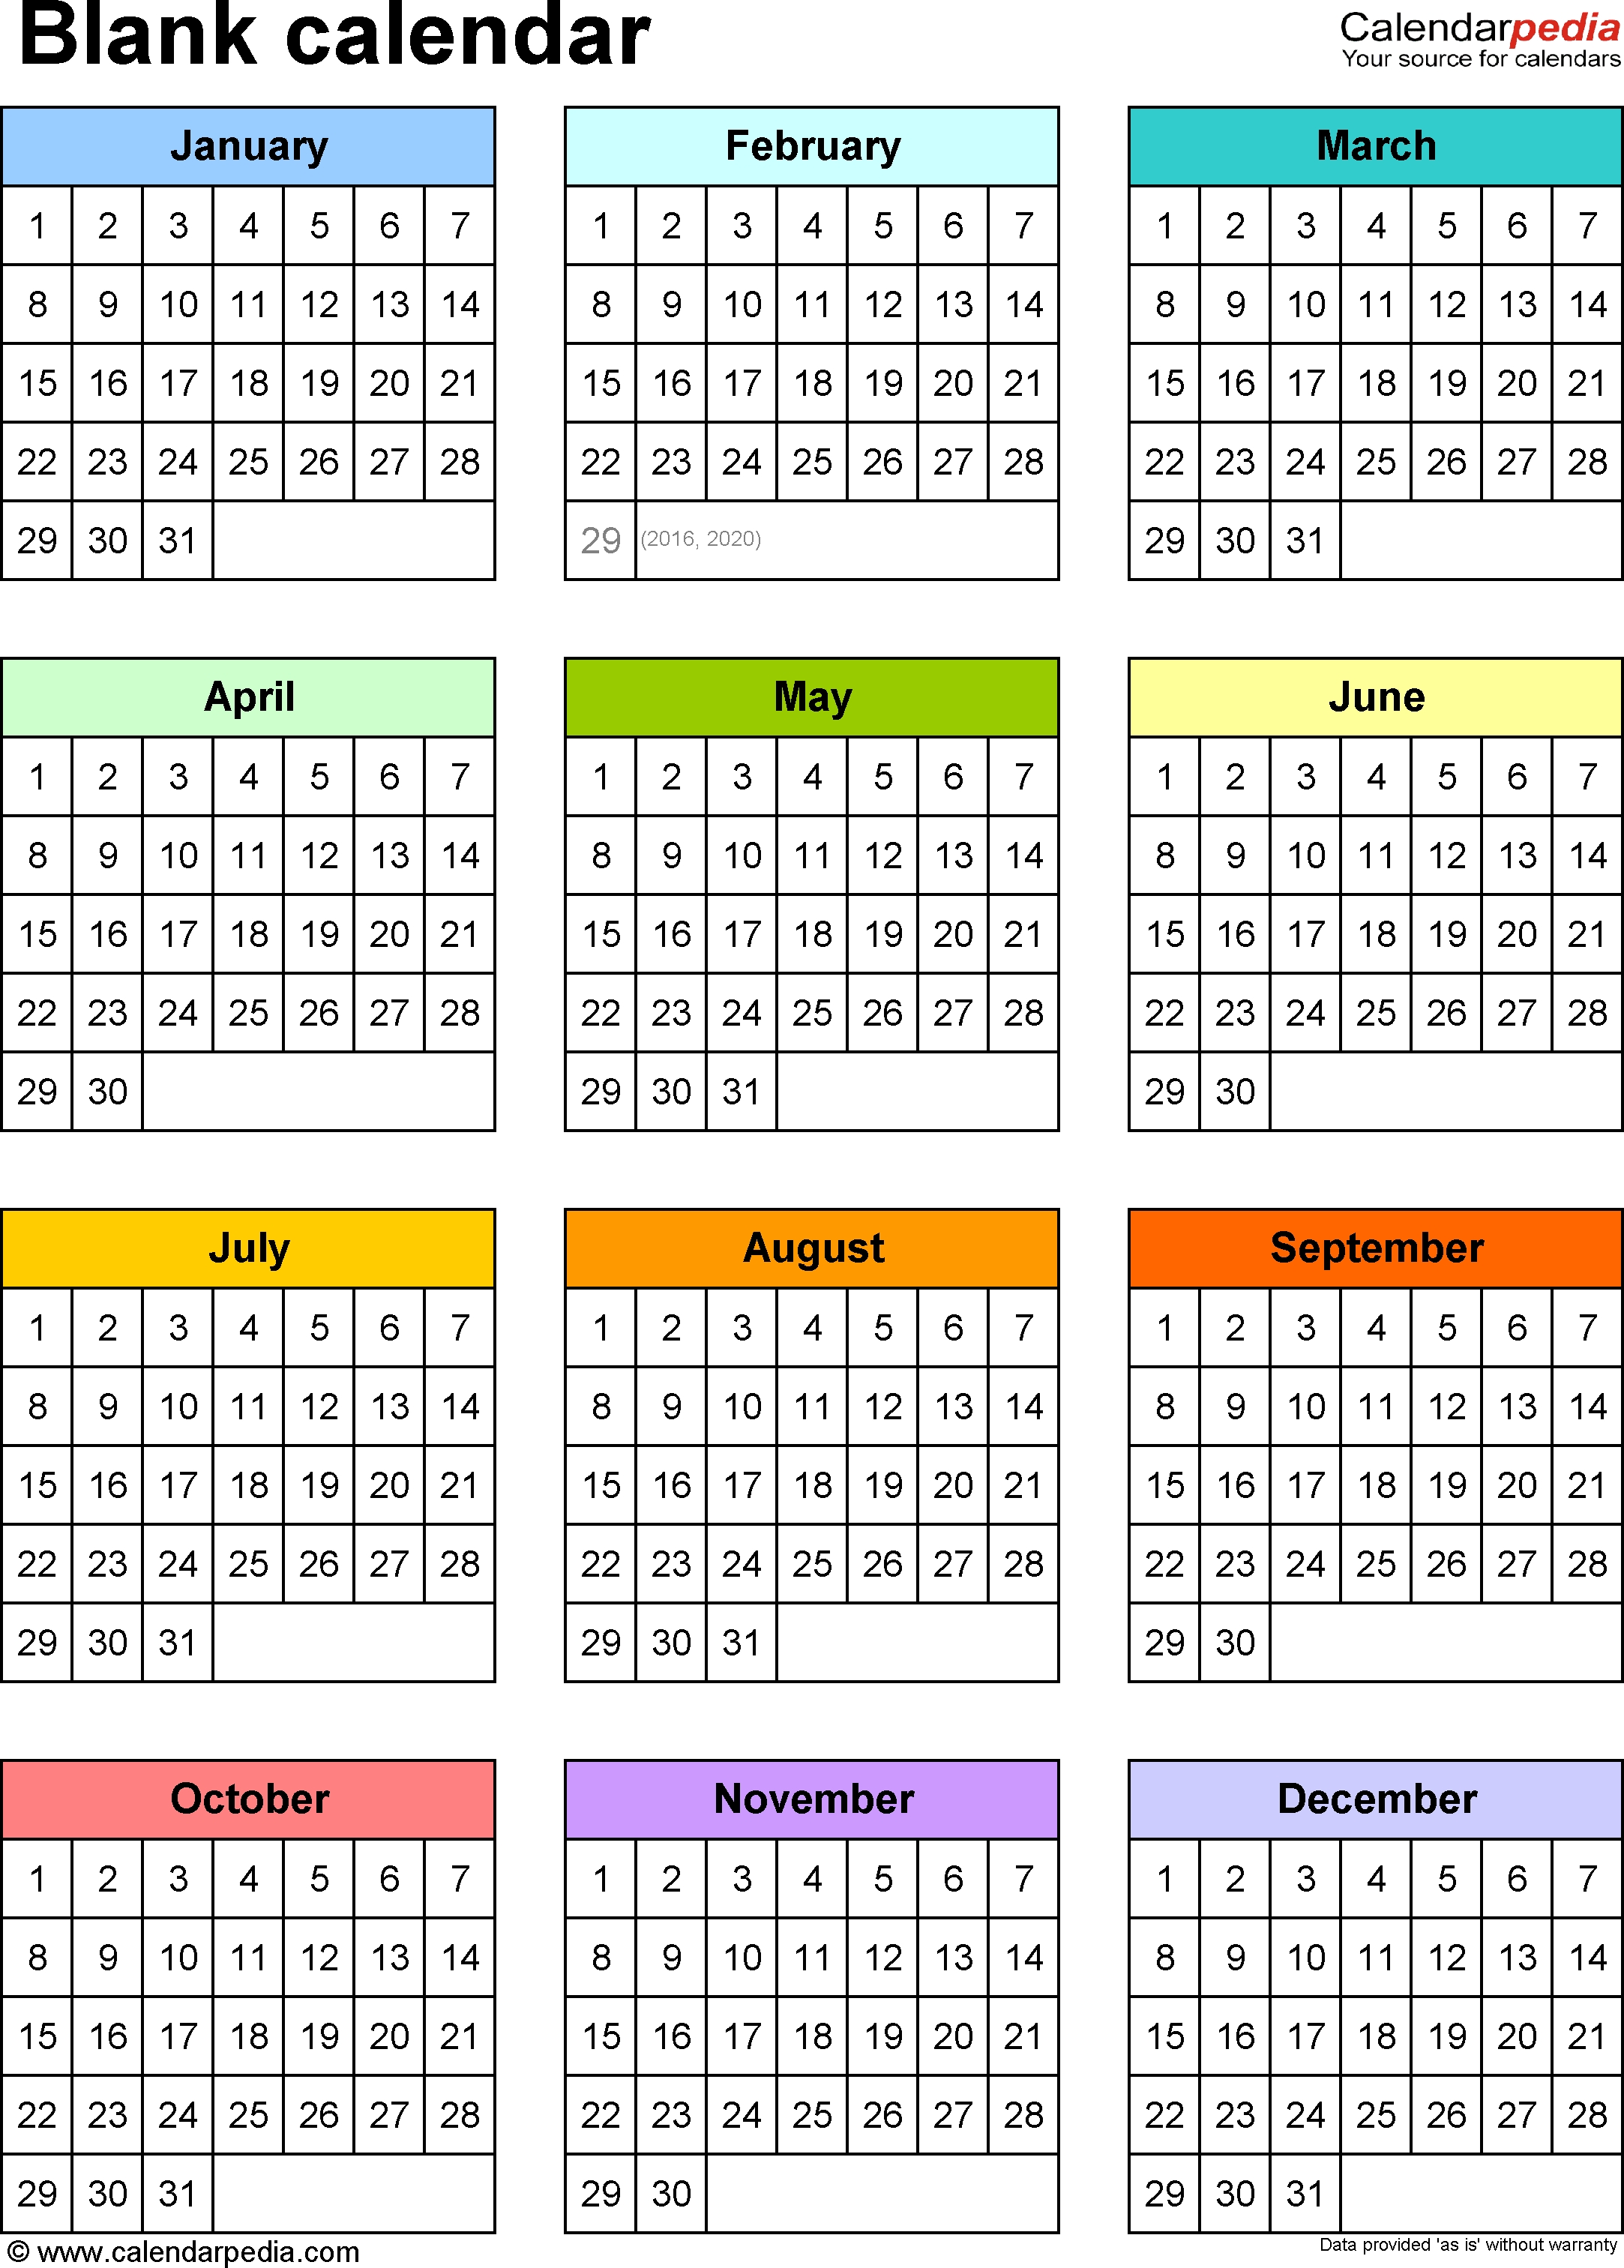 Blank Calendar - 9 Free Printable Microsoft Word Templates within Year At A Glance Template